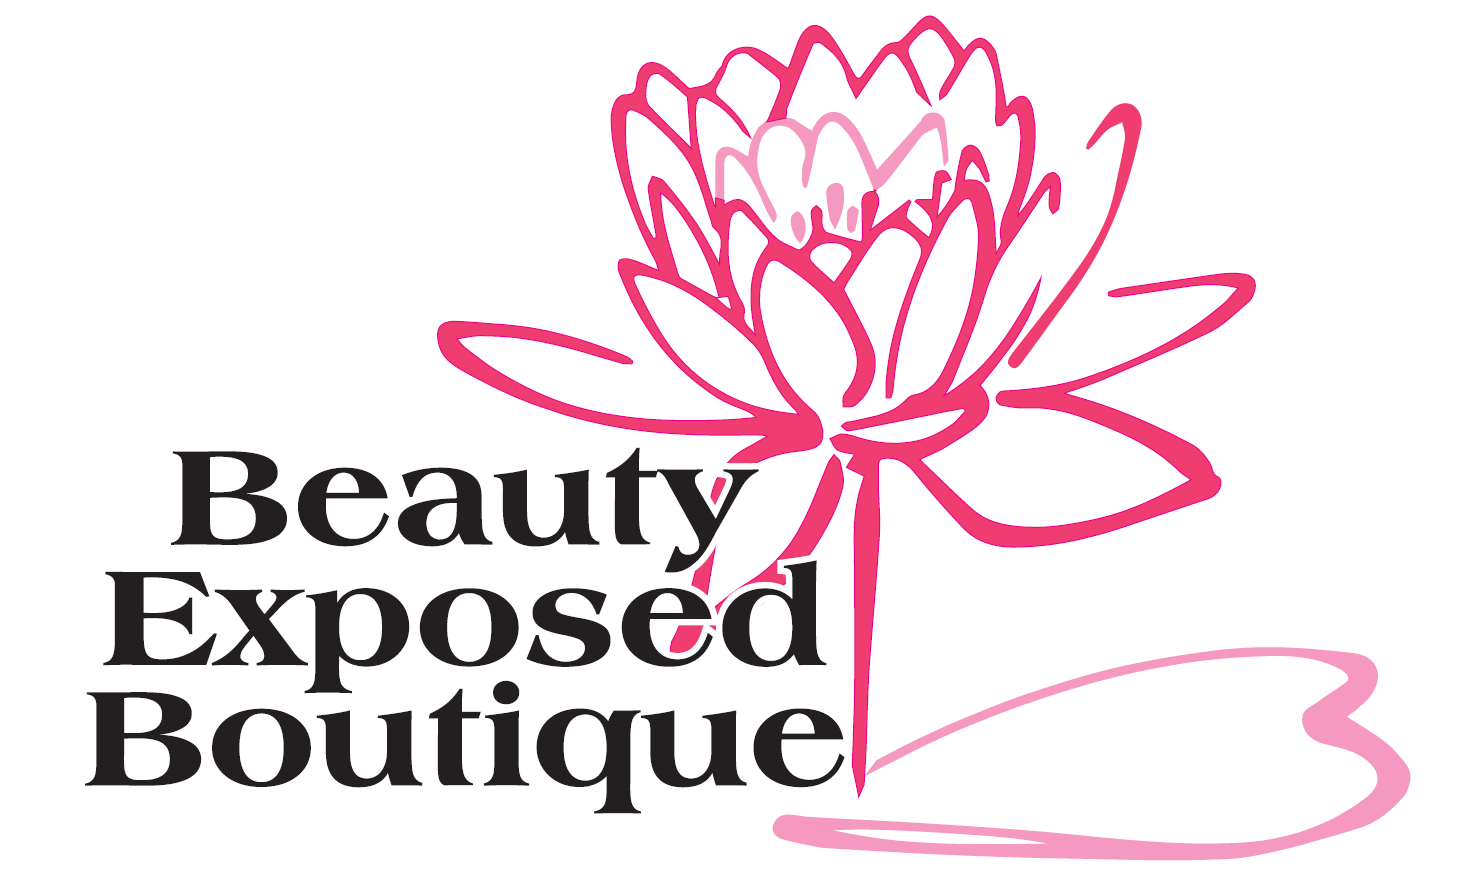 Beauty ExposedBoutique